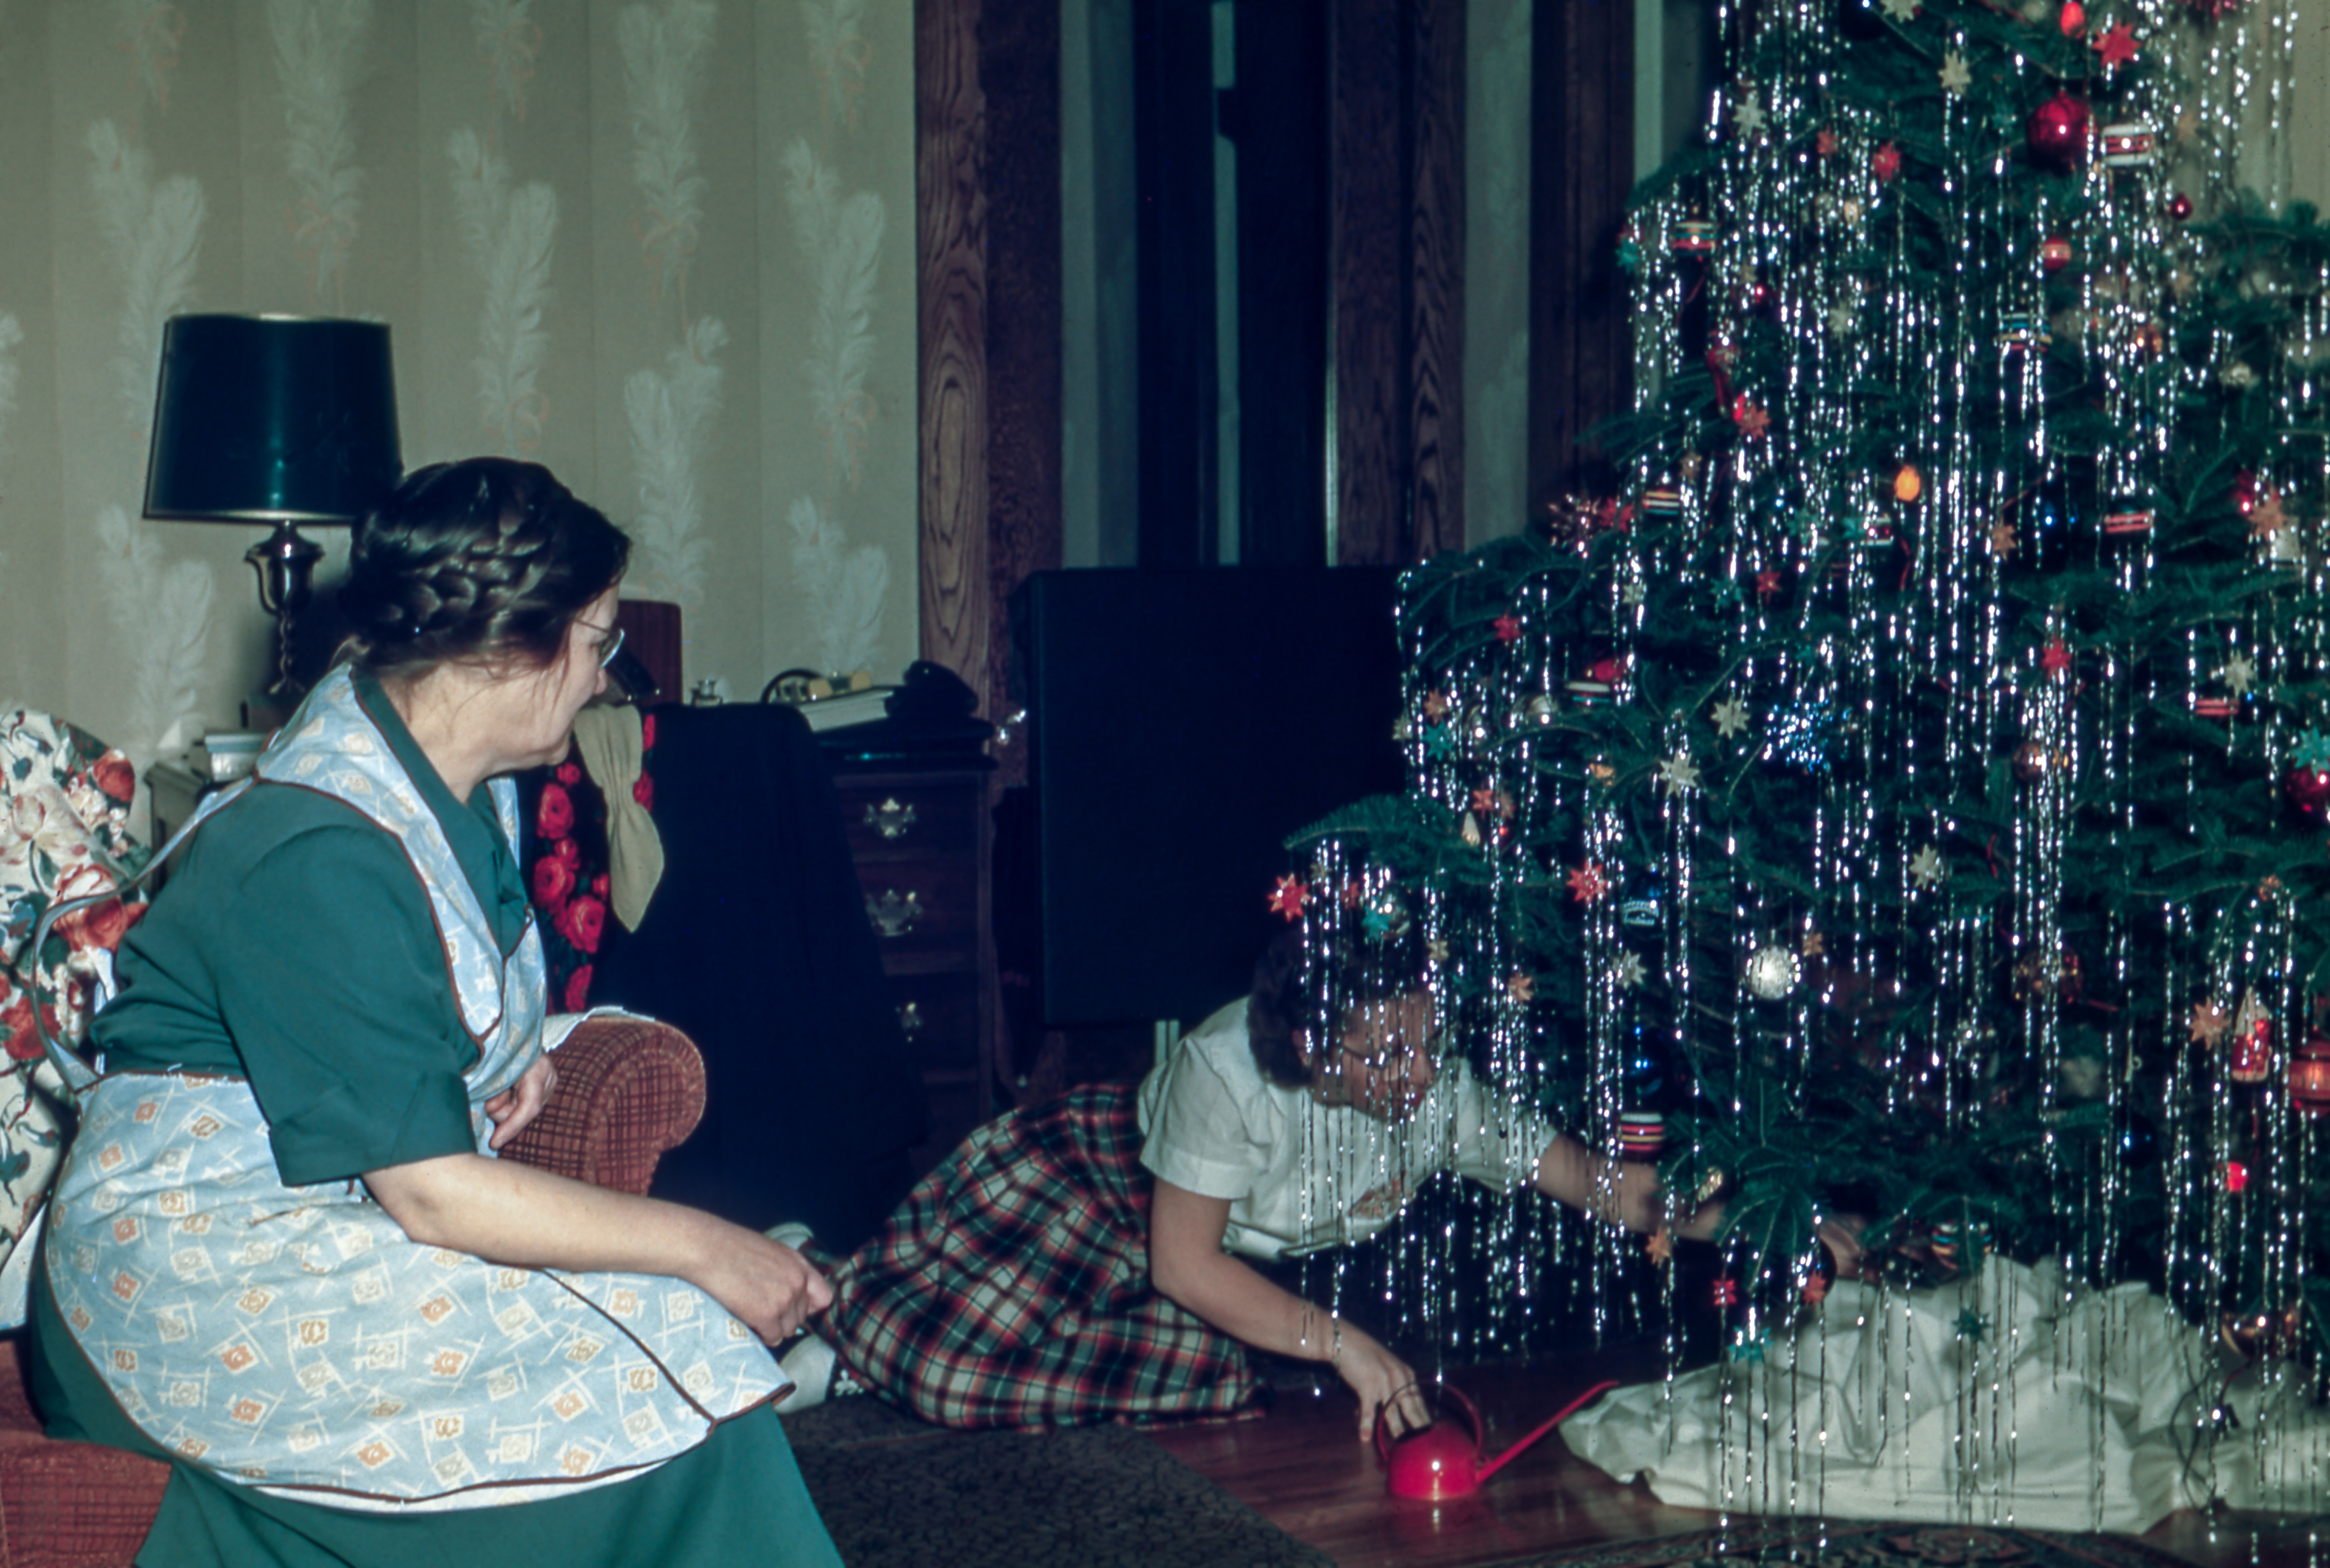 A classic photo of a mom wearing a pinafore and glasses, sitting on a chair watching her daughter put gifts under a Christmas tree